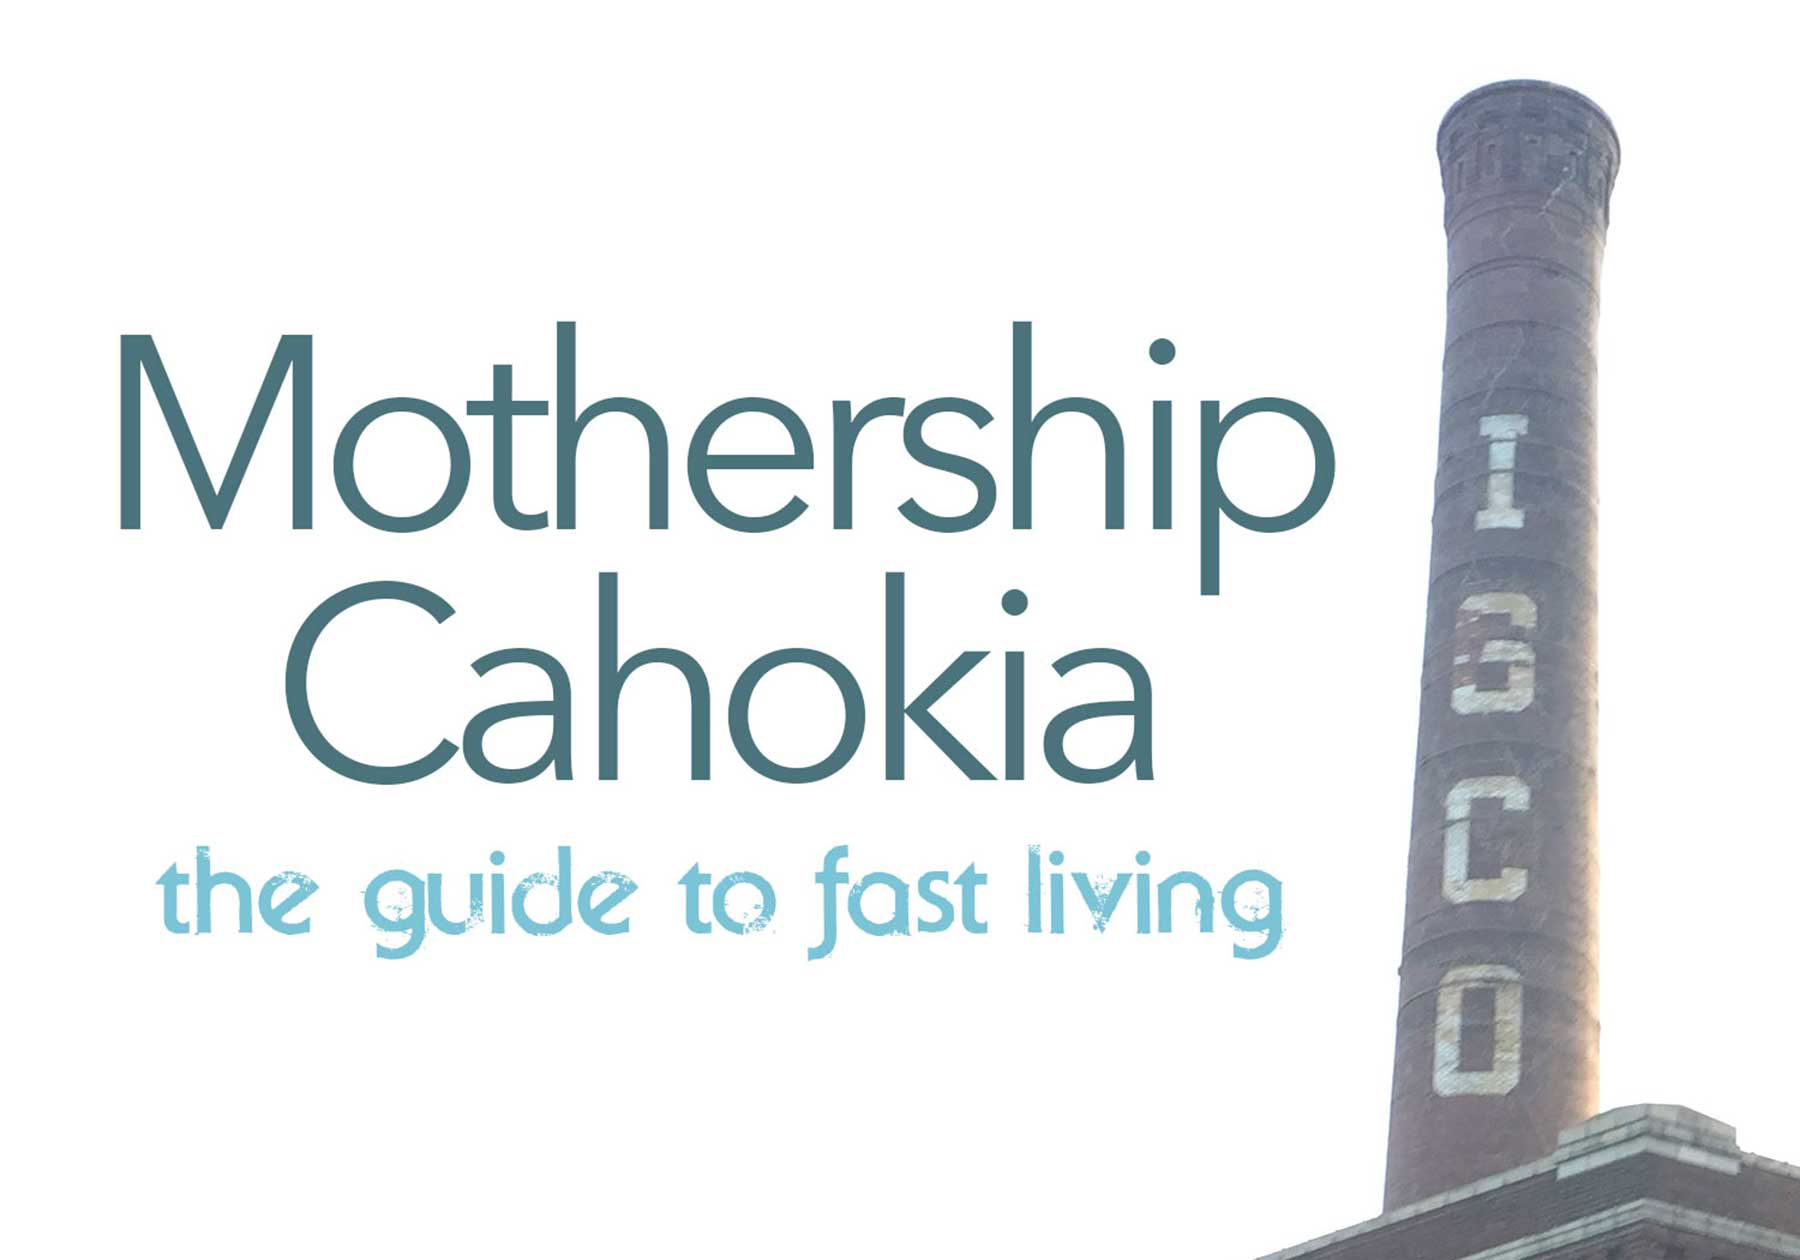 The Guide to Fast Living - Mothership Cahokia